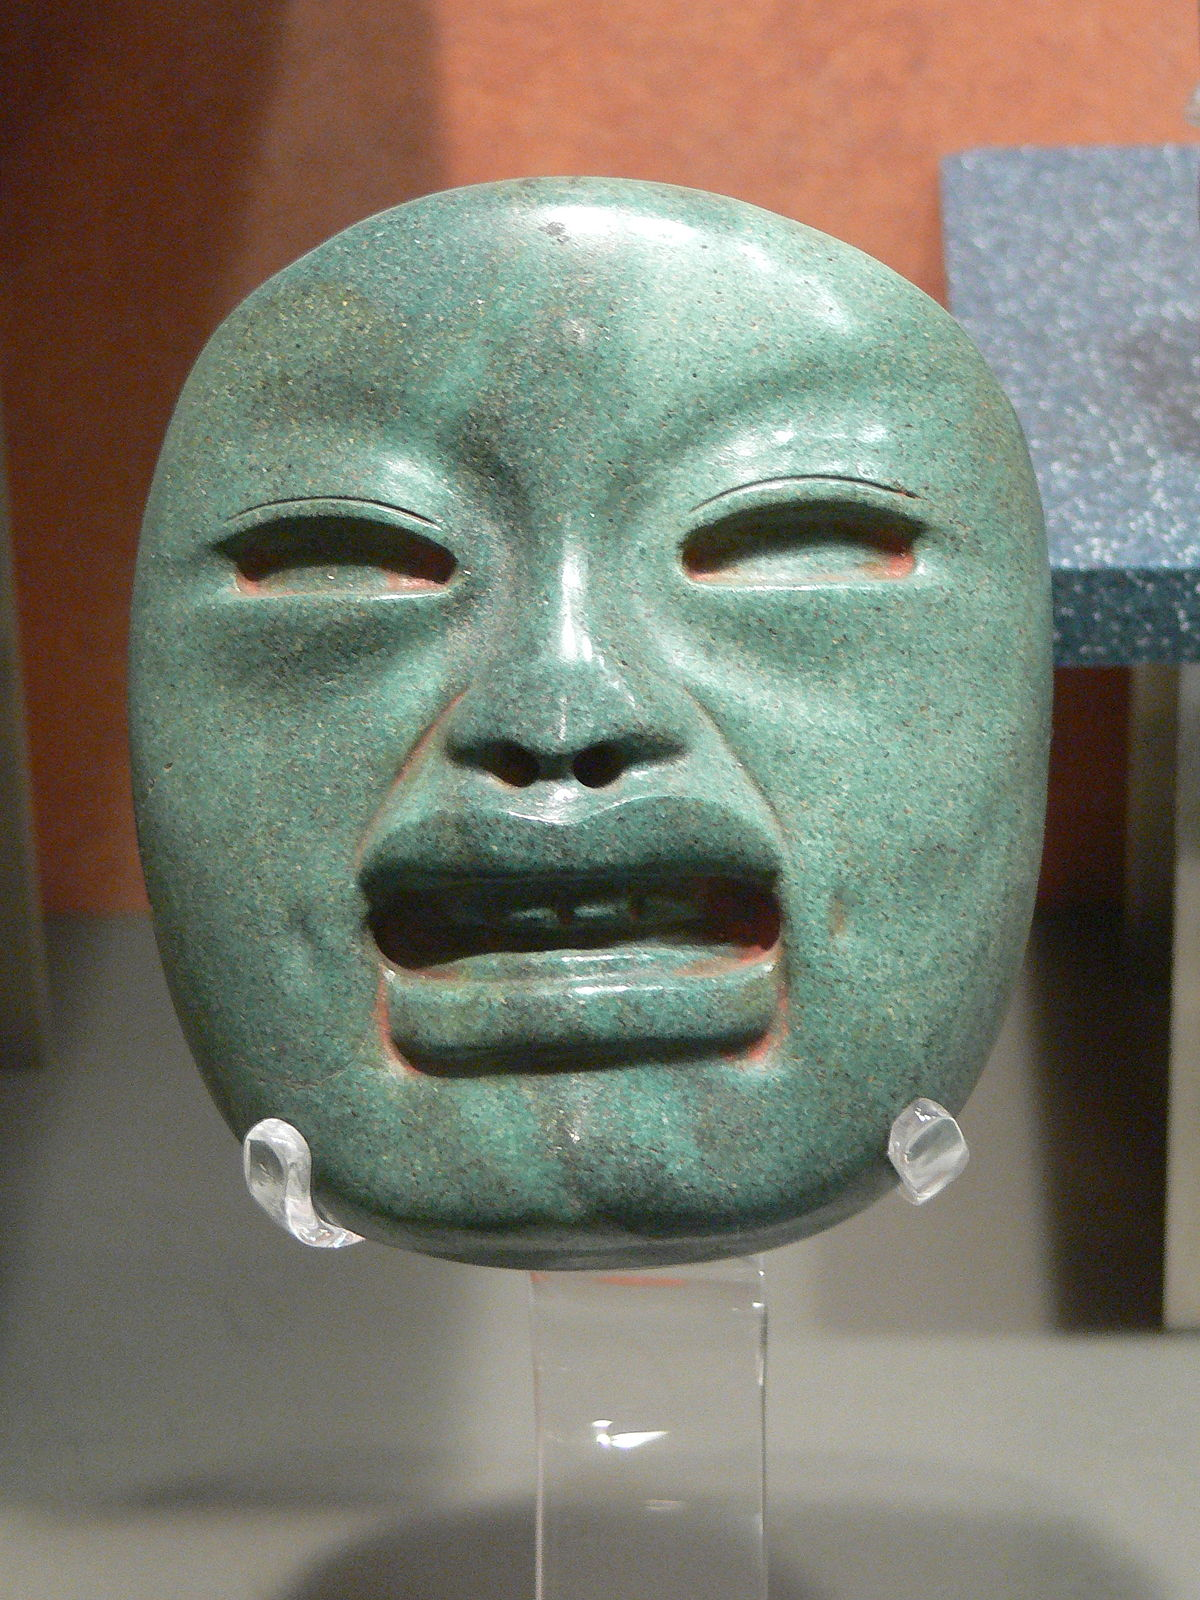 olmec research paper Olmec religious activities were performed by a combination of rulers, full-time priests, and shamans the rulers seem to have been the most important religious.